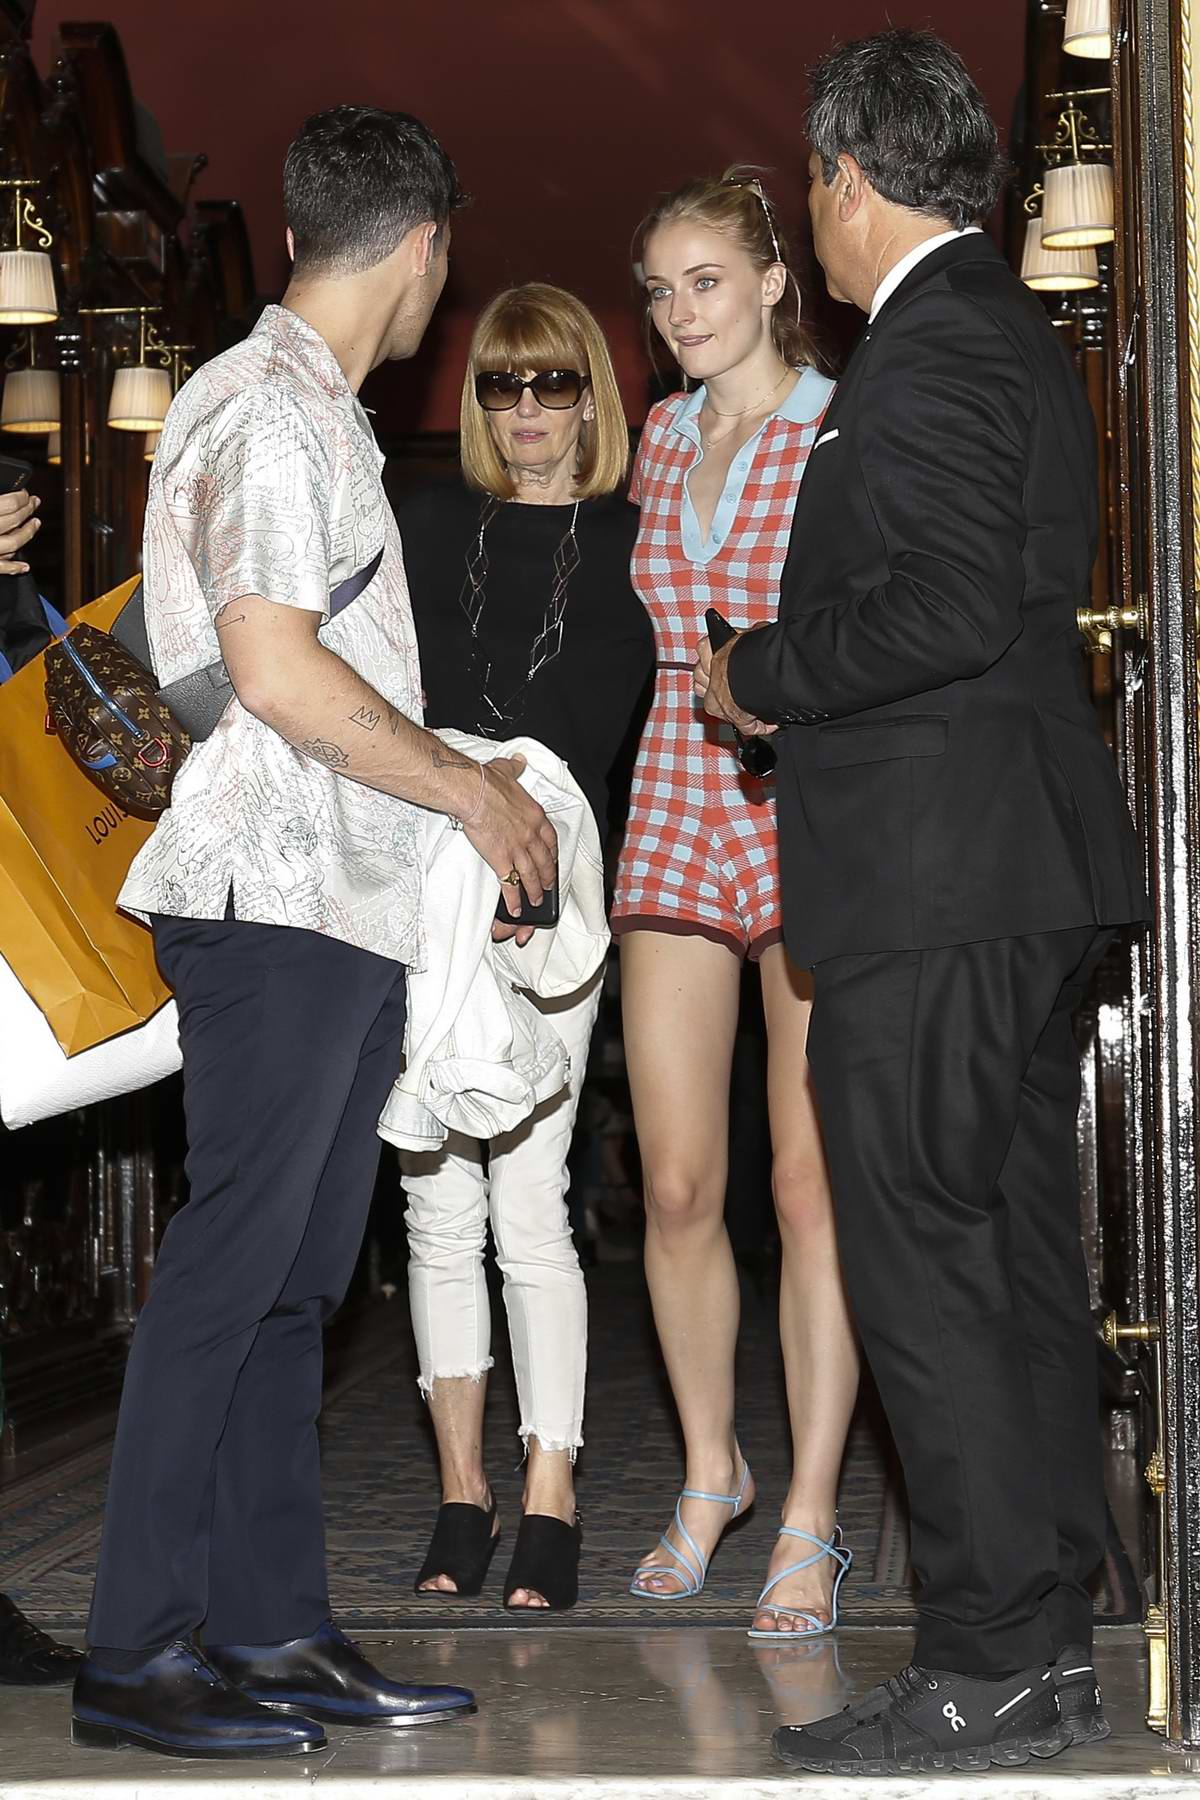 Sophie Turner seen leaving The Costes Hotel with her mother and Joe Jonas during Paris Fashion Week in Paris, France